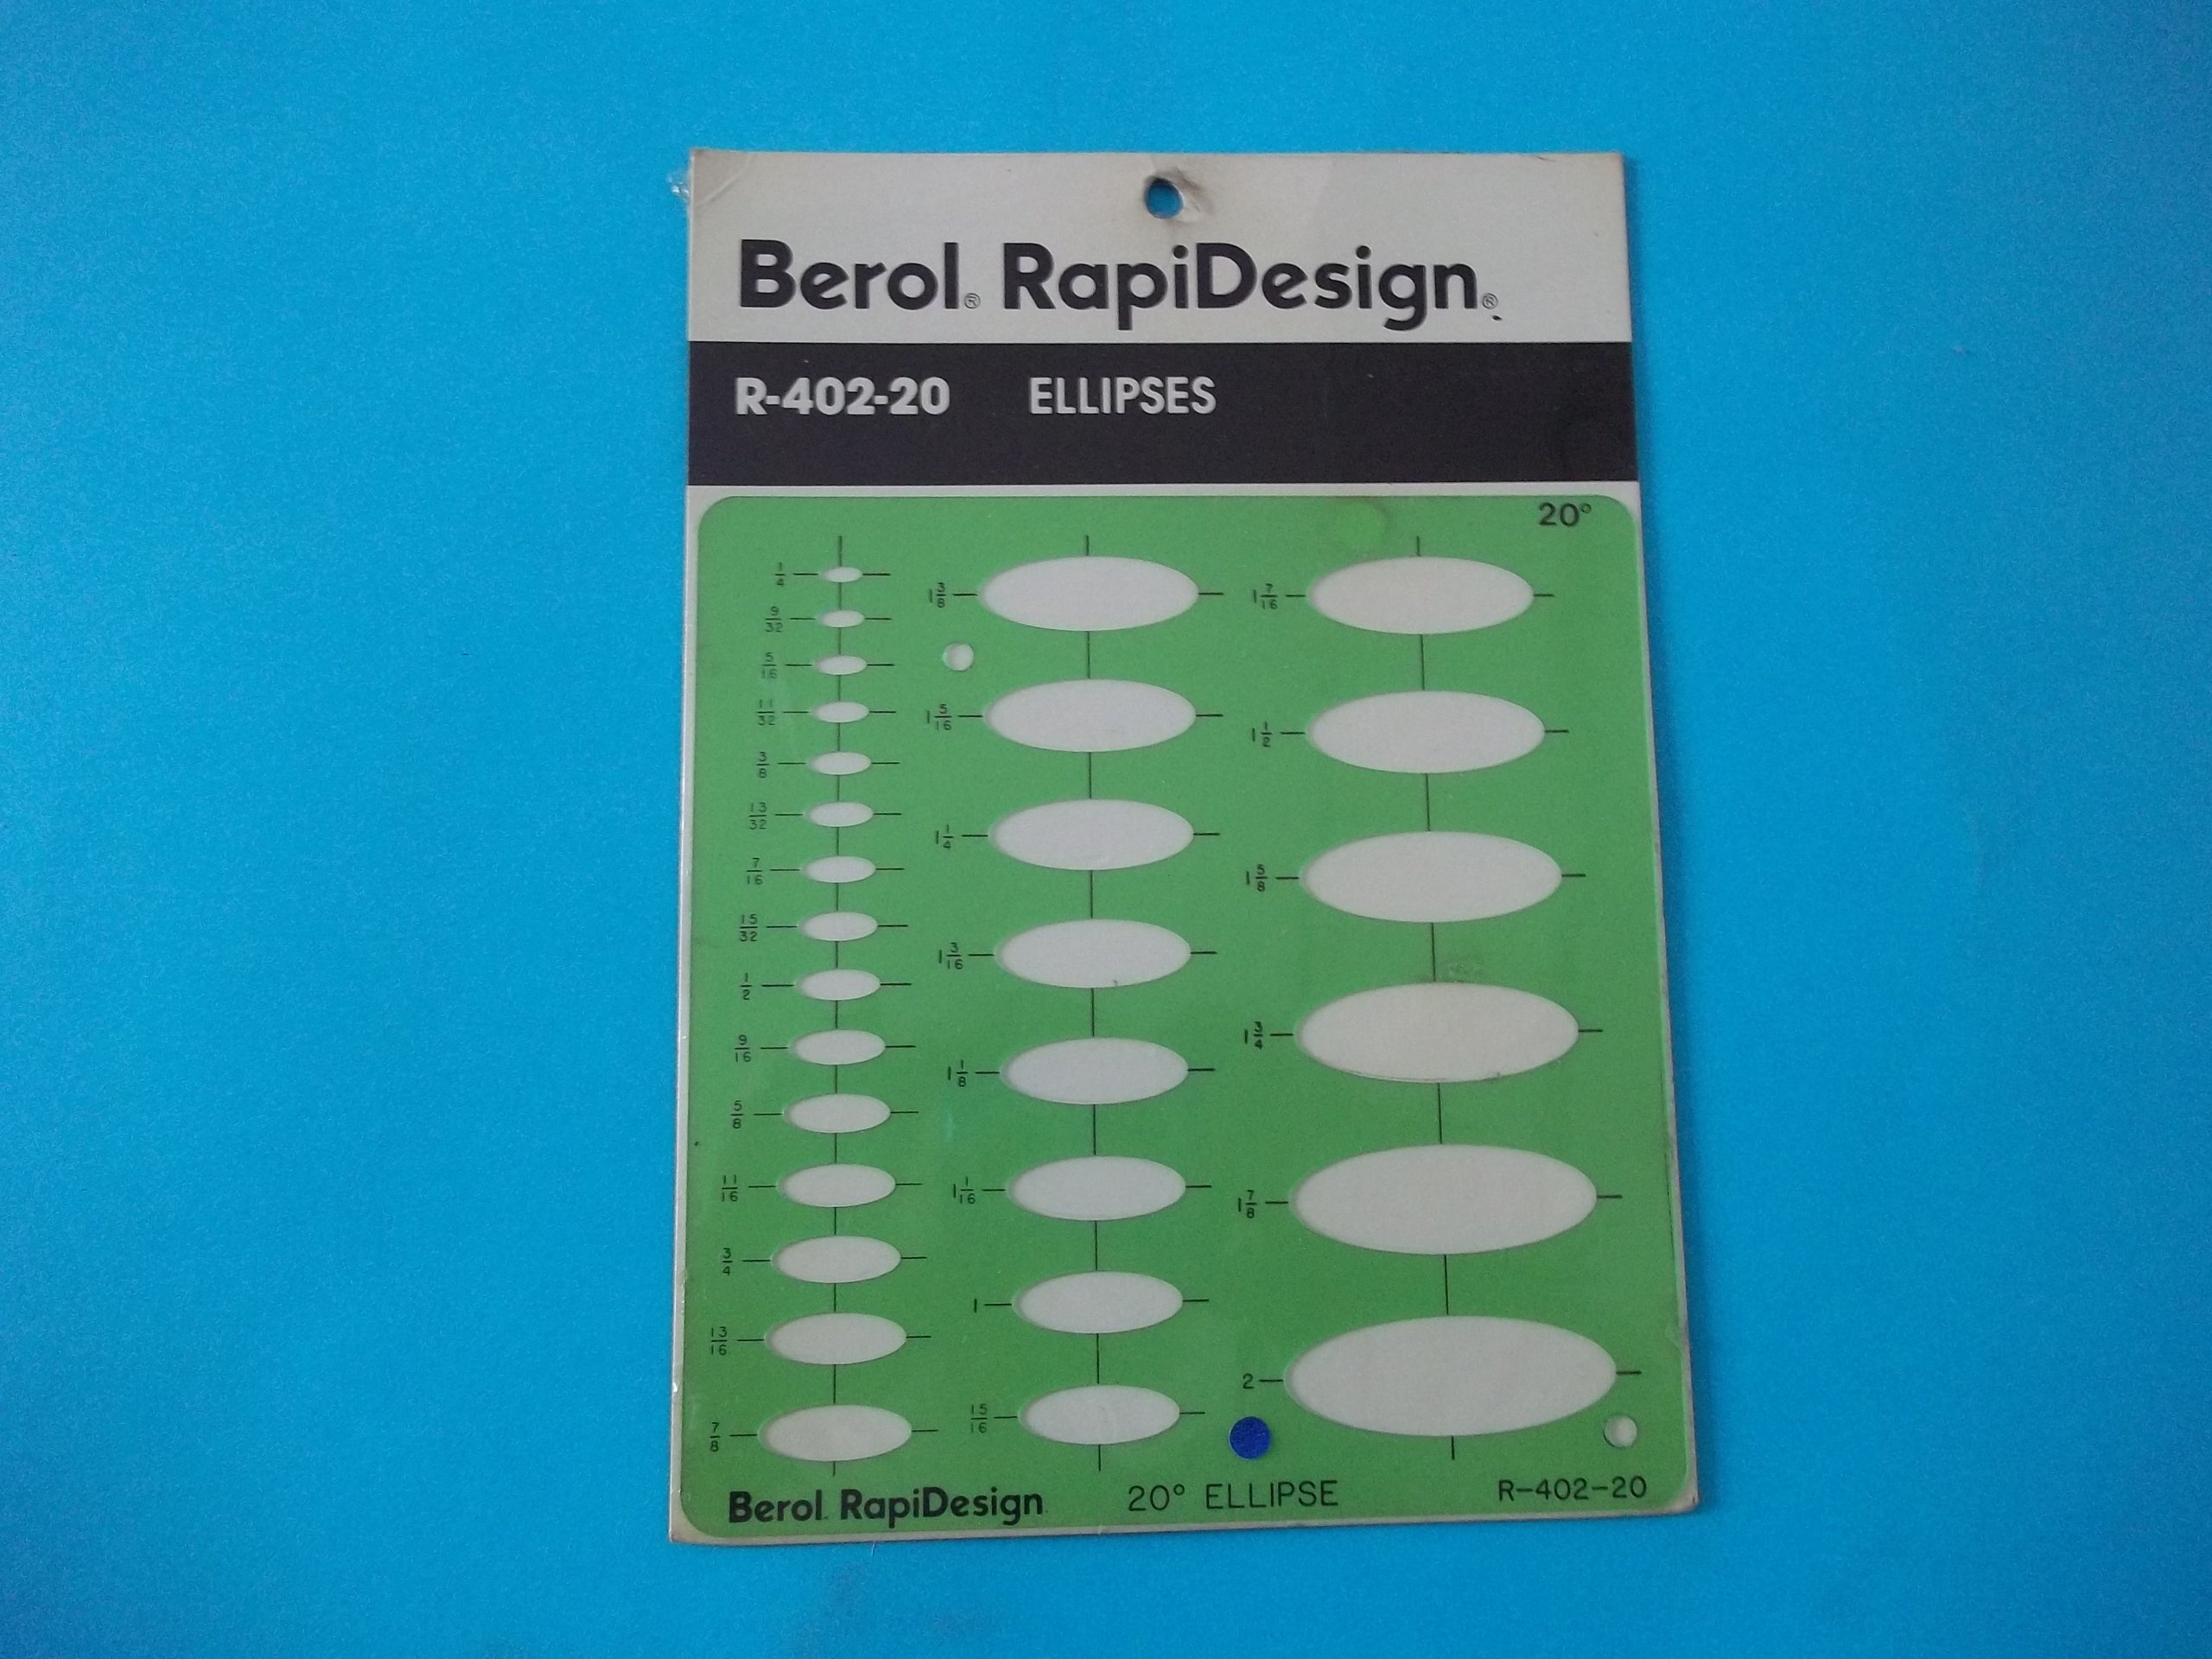 Berol Rapidesign R-402-20 Technical Drawing Template Ellipses 20 Degrees 1/8'' x 2'' Hot-Stamped Centering Lines Made in USA